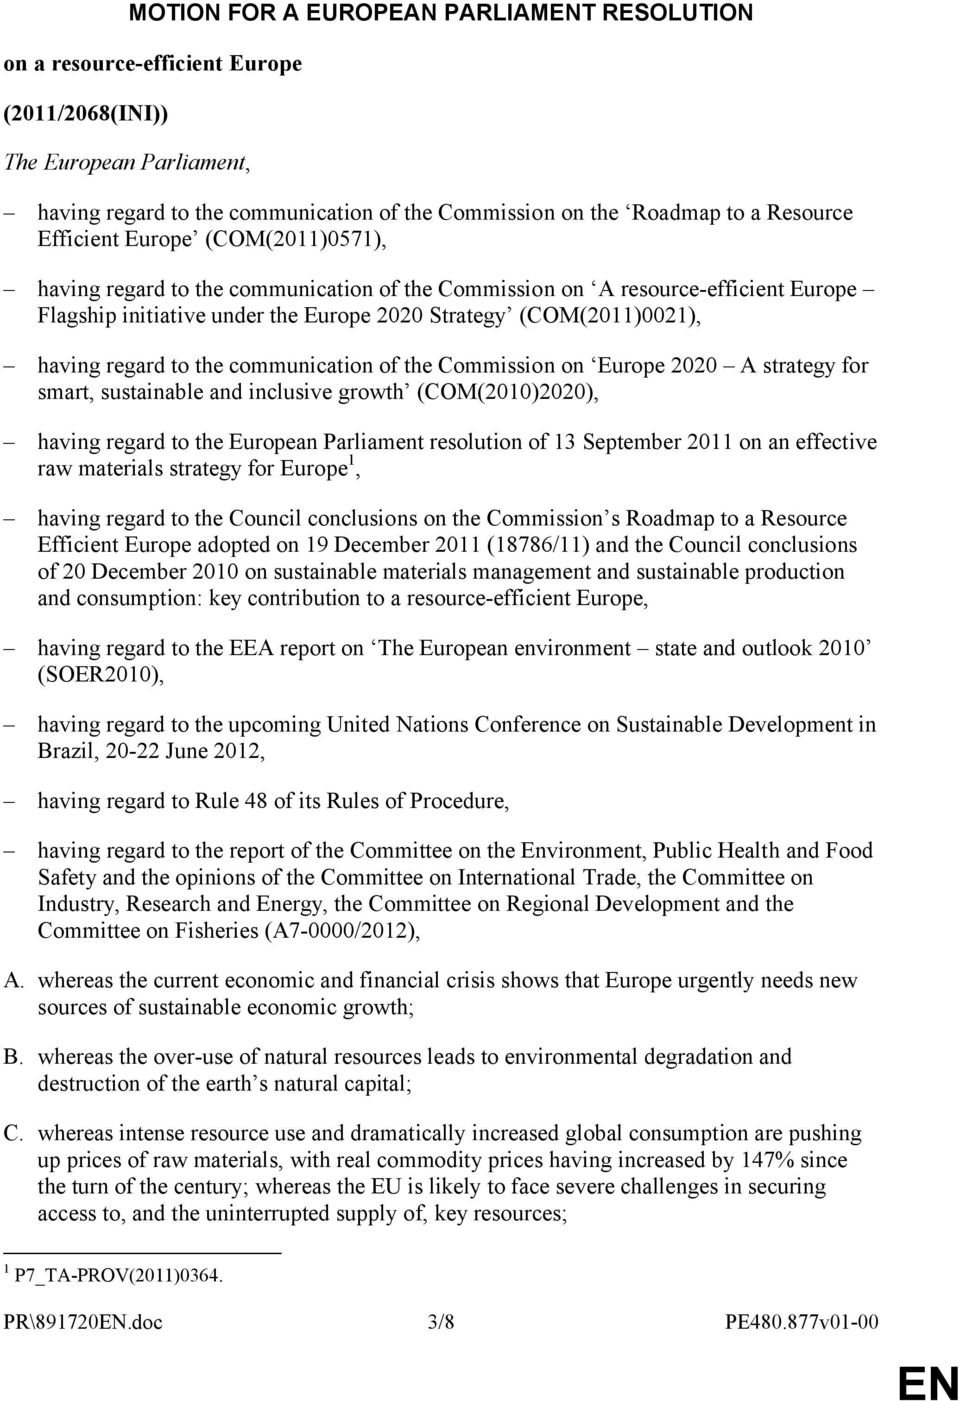 to the communication of the Commission on Europe 2020 A strategy for smart, sustainable and inclusive growth (COM(2010)2020), having regard to the European Parliament resolution of 13 September 2011